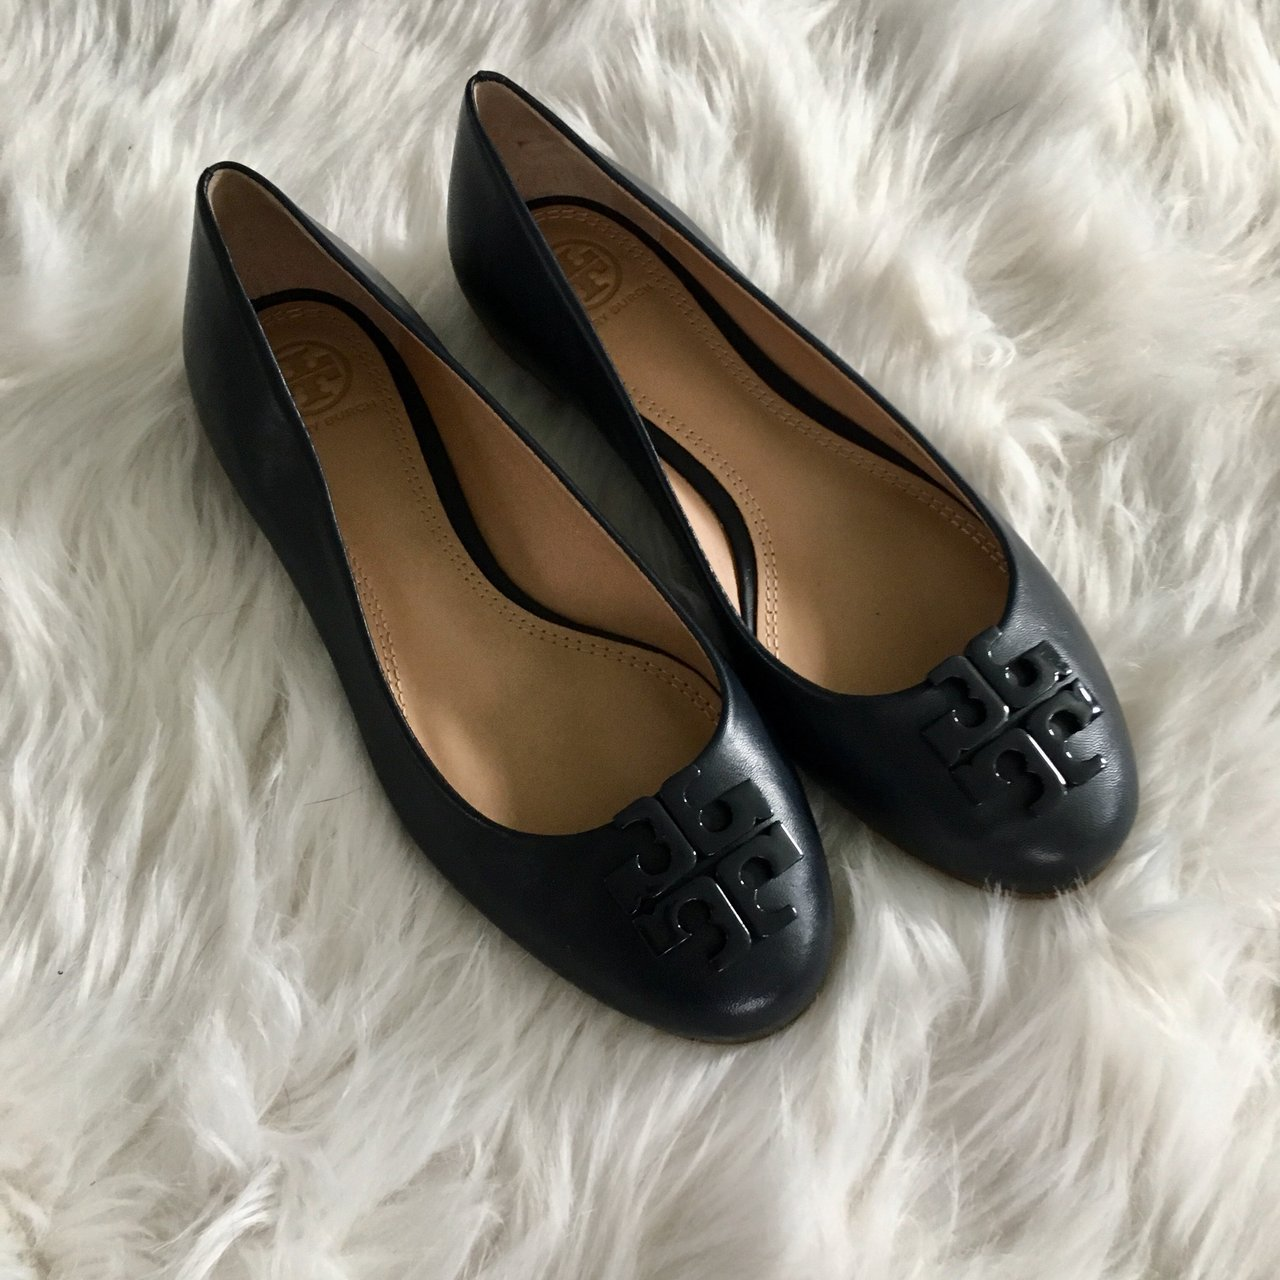 a1d85baa65fe New  toryburch navy leather flats. Size 7. New without  reva - Depop